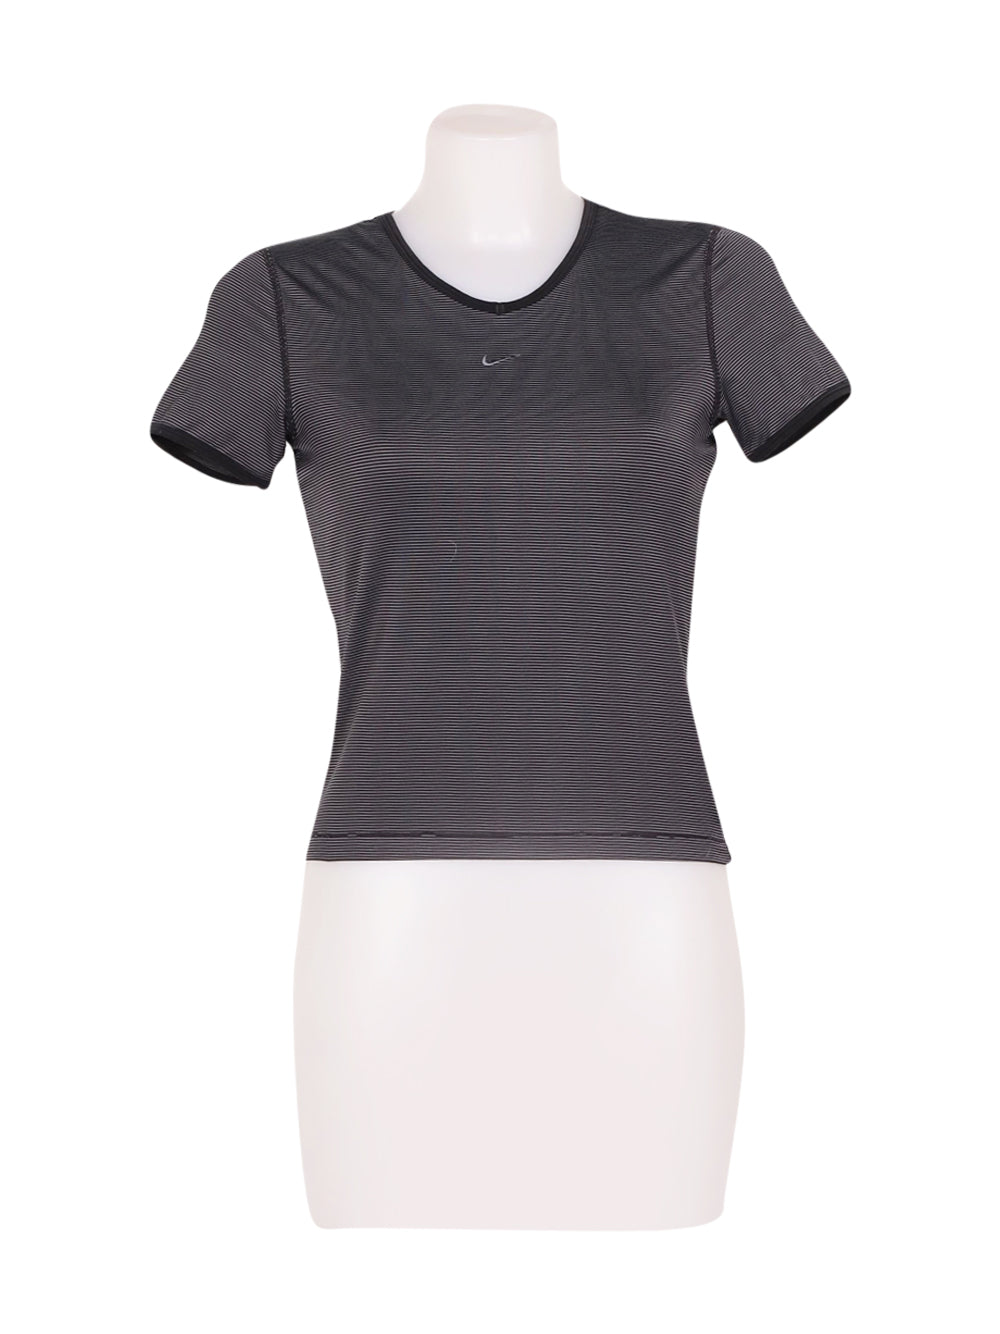 Front photo of Preloved Nike Grey Woman's t-shirt sport - size 10/M